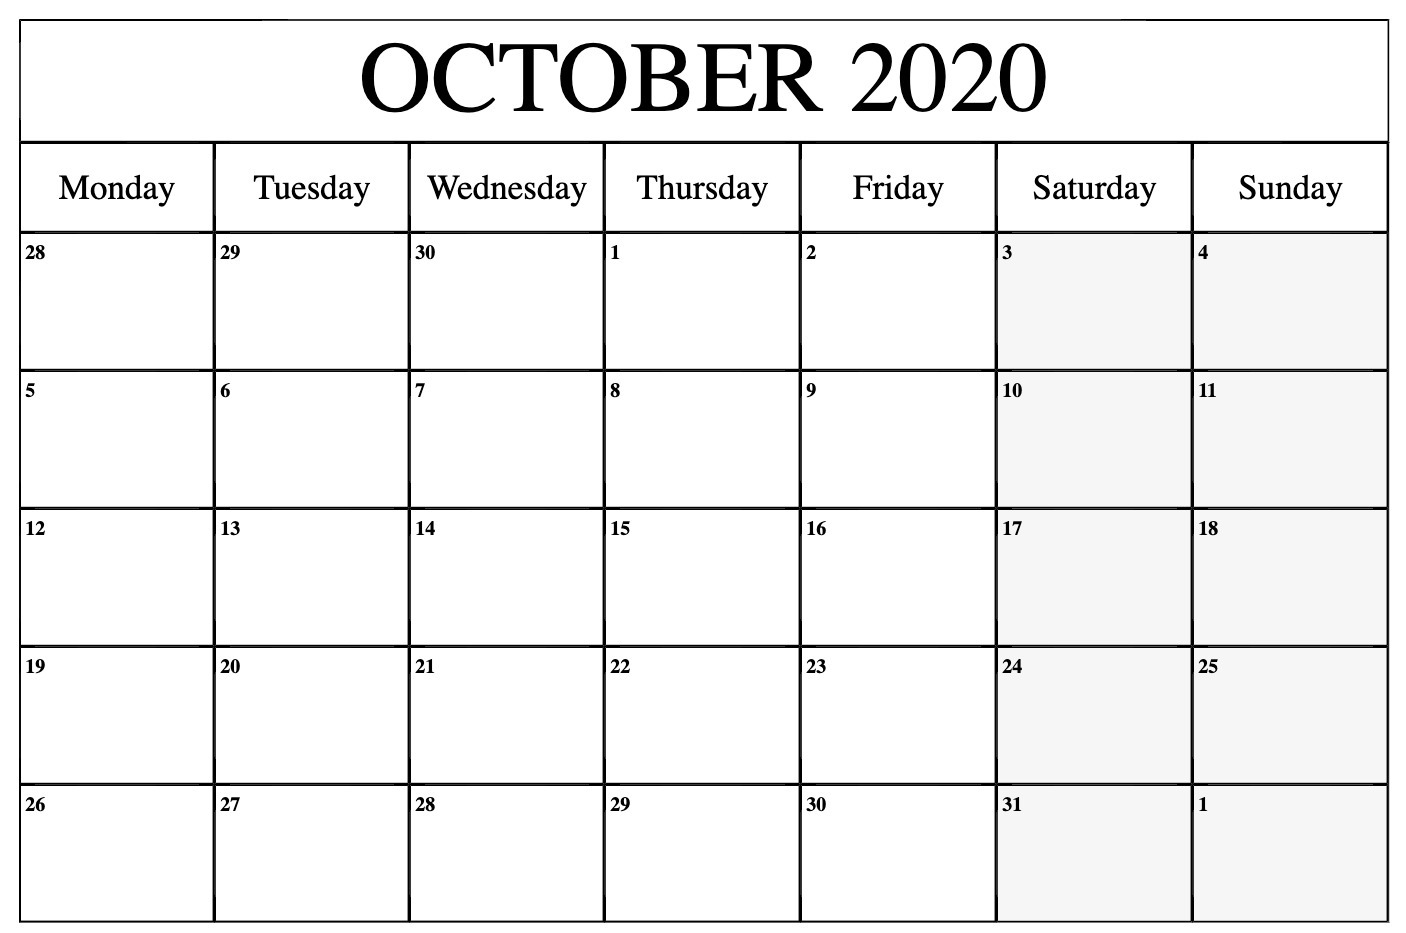 Calendario In Excel 2020.October 2020 Calendar Pdf Word Excel Template